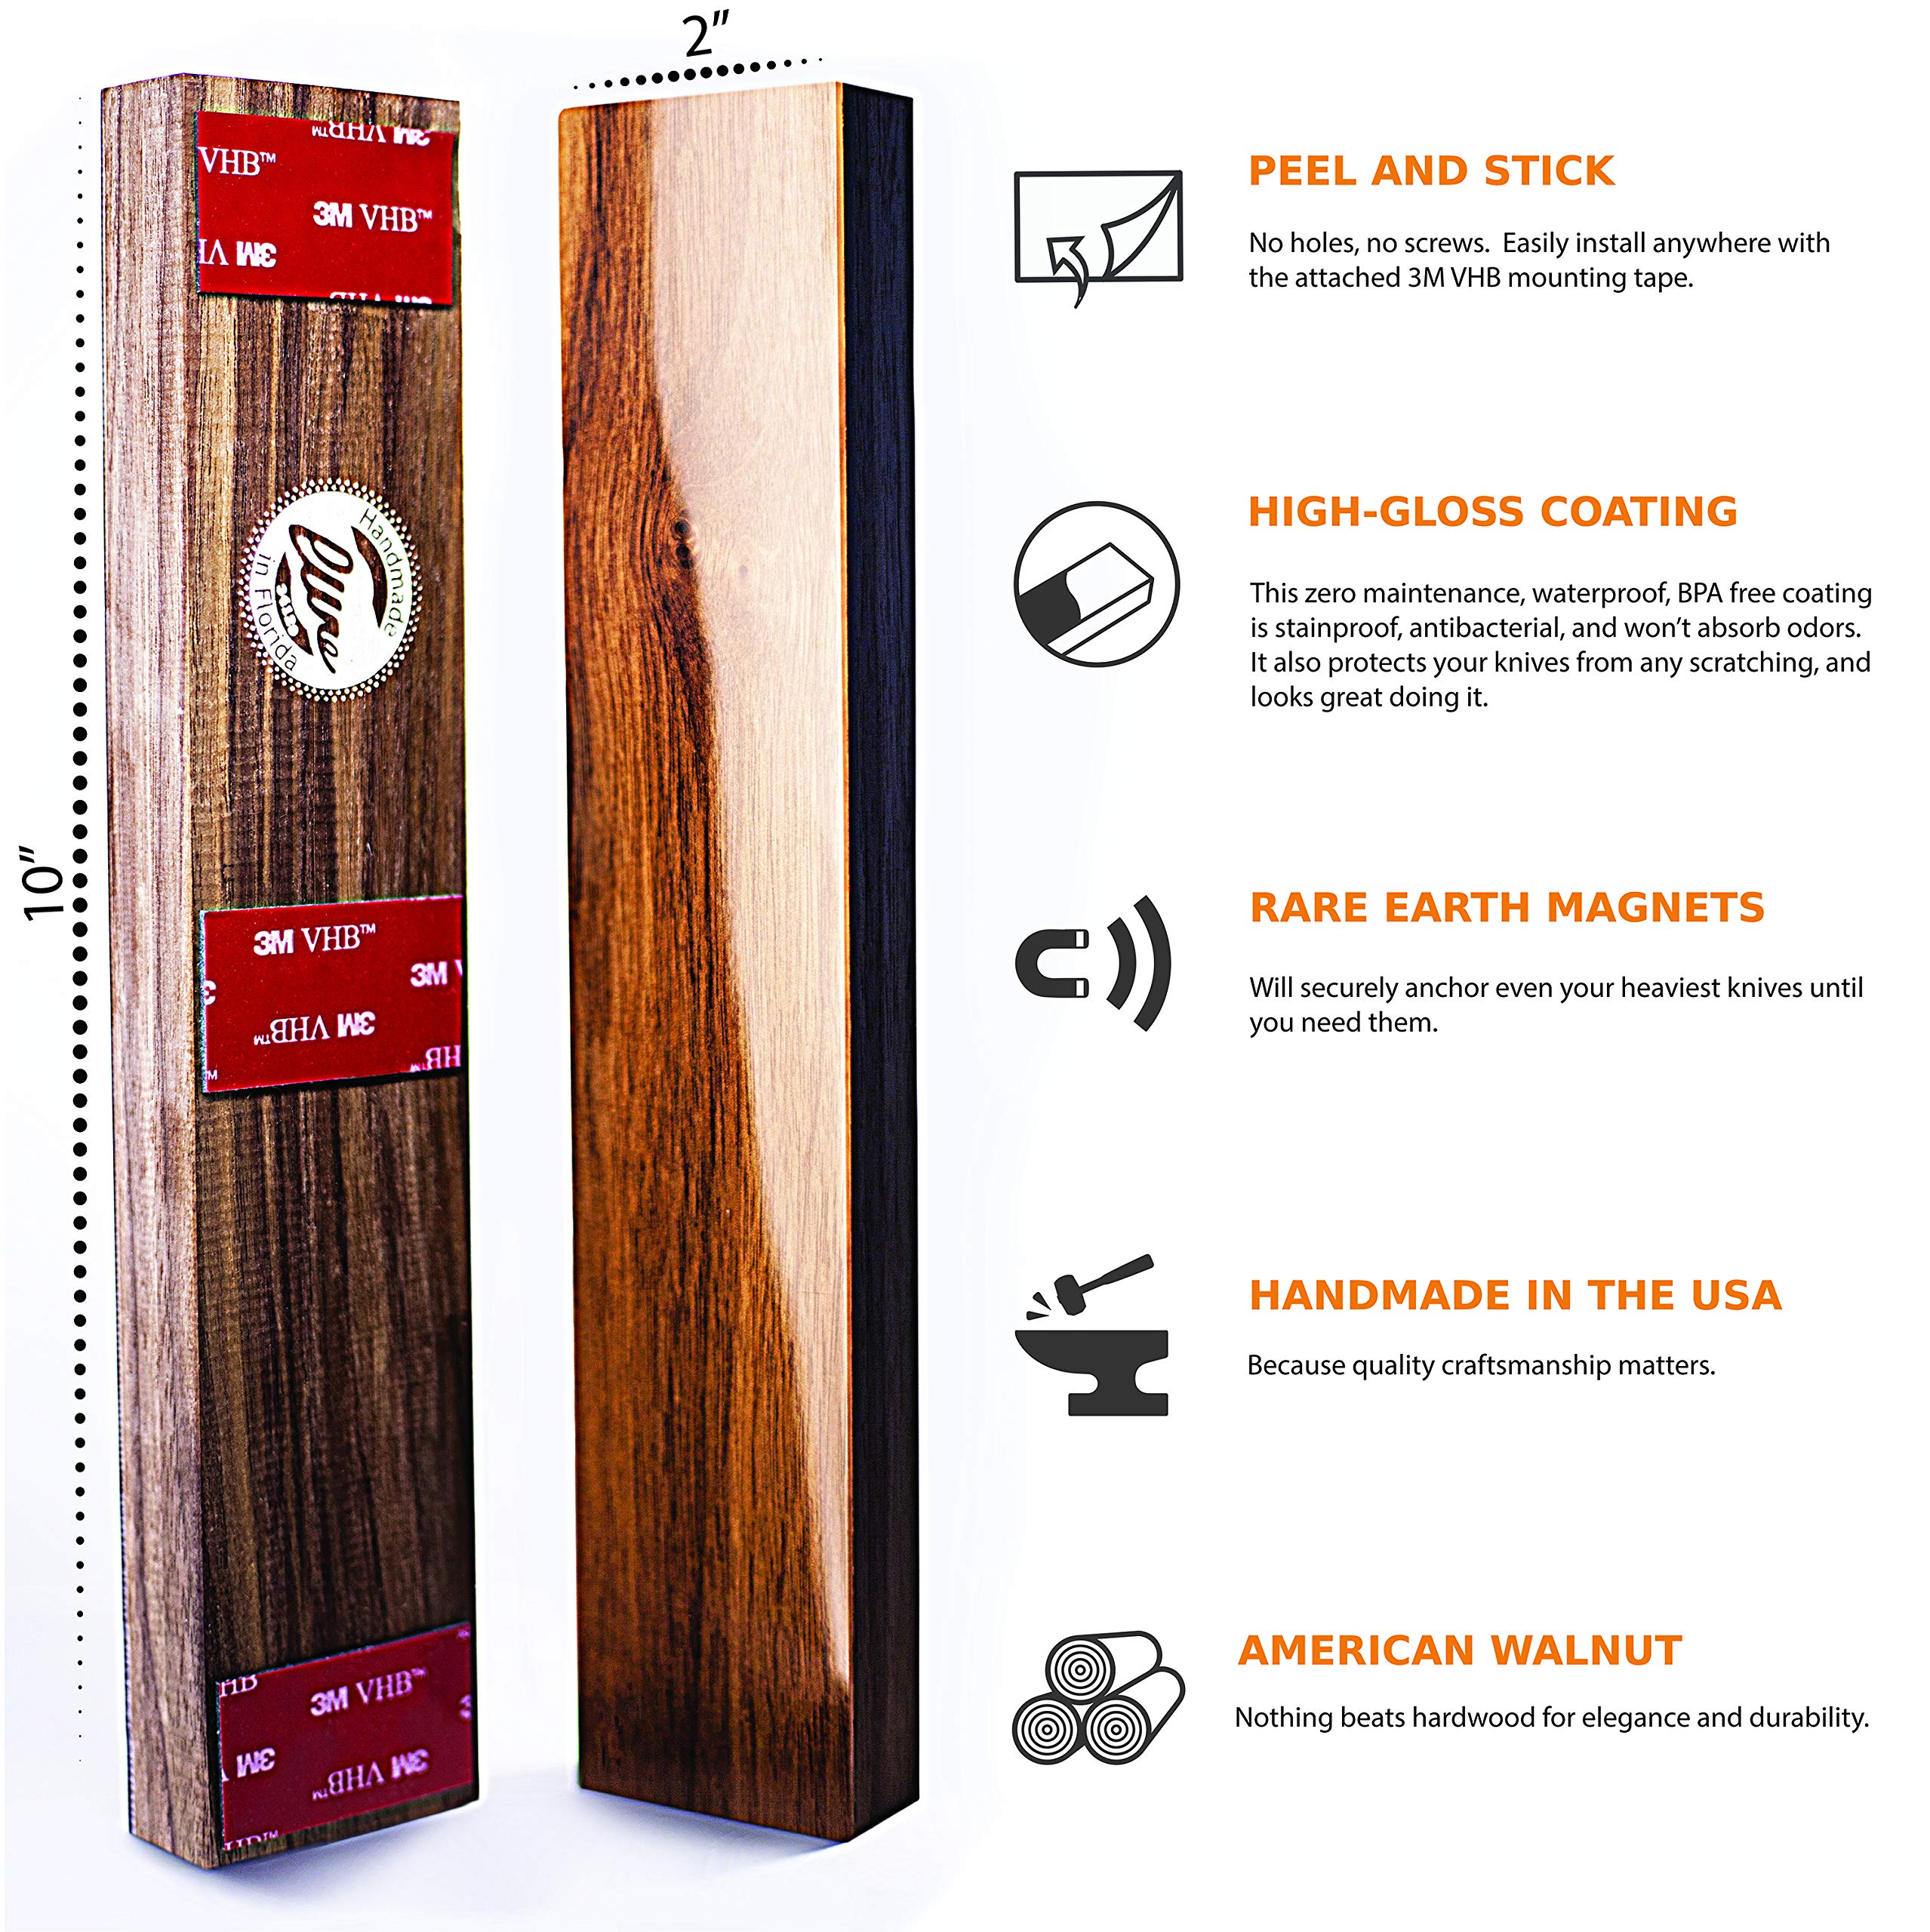 Magnetic Knife Strip Self Adhesive - 10 inch Magnet holder - Utensil Rack for Kitchen or Bar - Wall or Fridge Mount - Walnut Wood - Made in USA by Lure (Image #2)